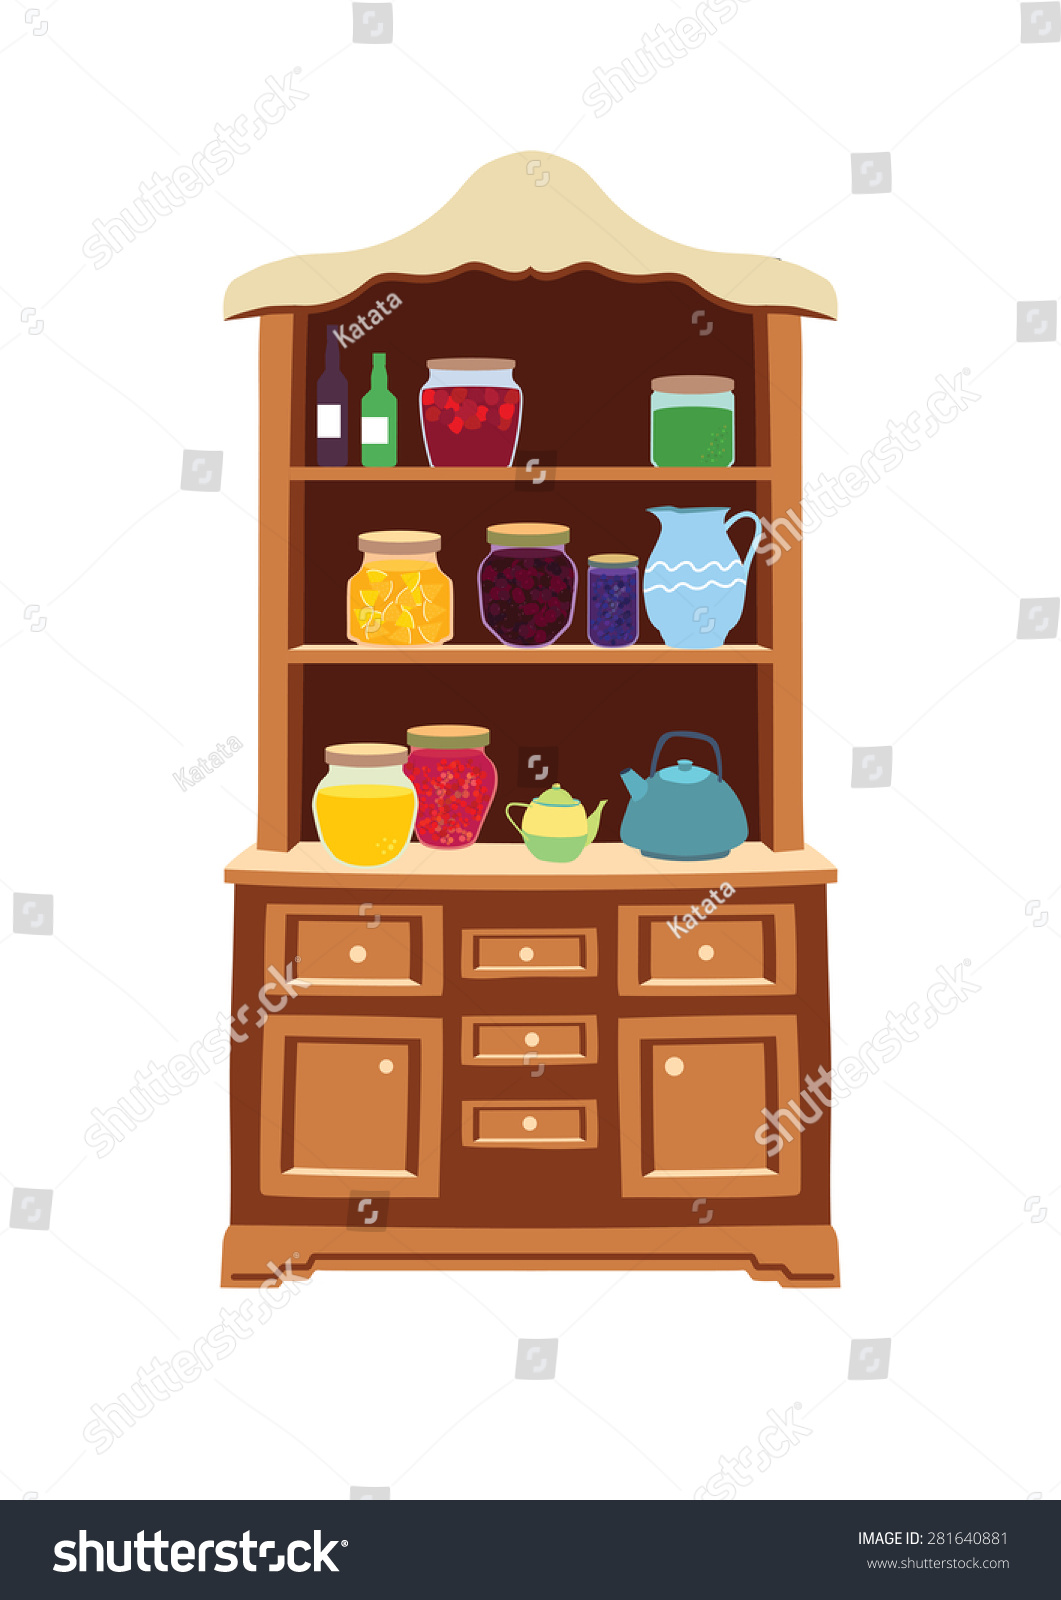 Antique Kitchen Cupboard For Supplies And Jam. Editable Vector Illustration  On White Background.